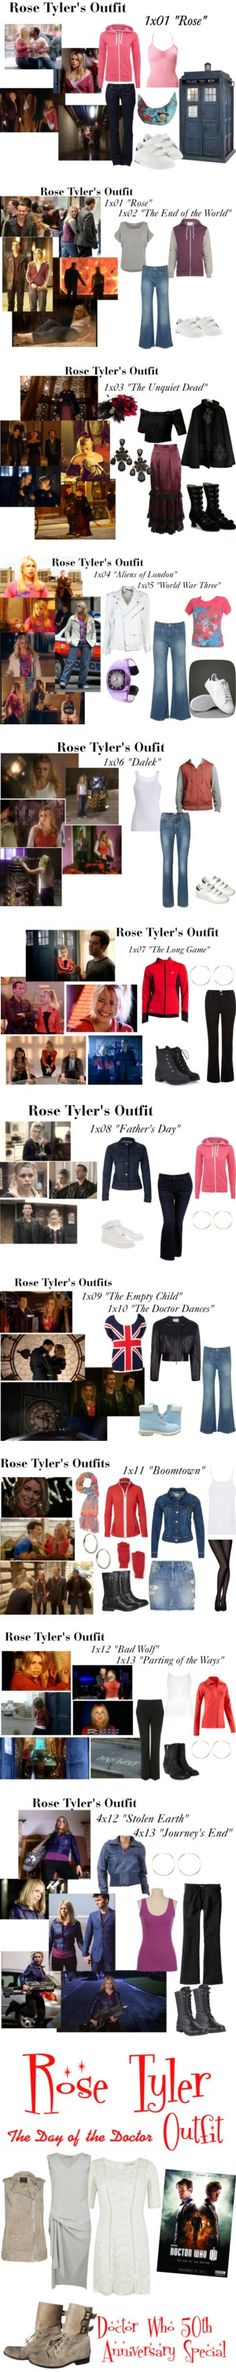 Rose Tyler's Outfits by erulisse17 on Polyvore featuring Sansha, GUESS, adidas, 1x01, episode one, doctor who, season one, rose, rose tyler and costume